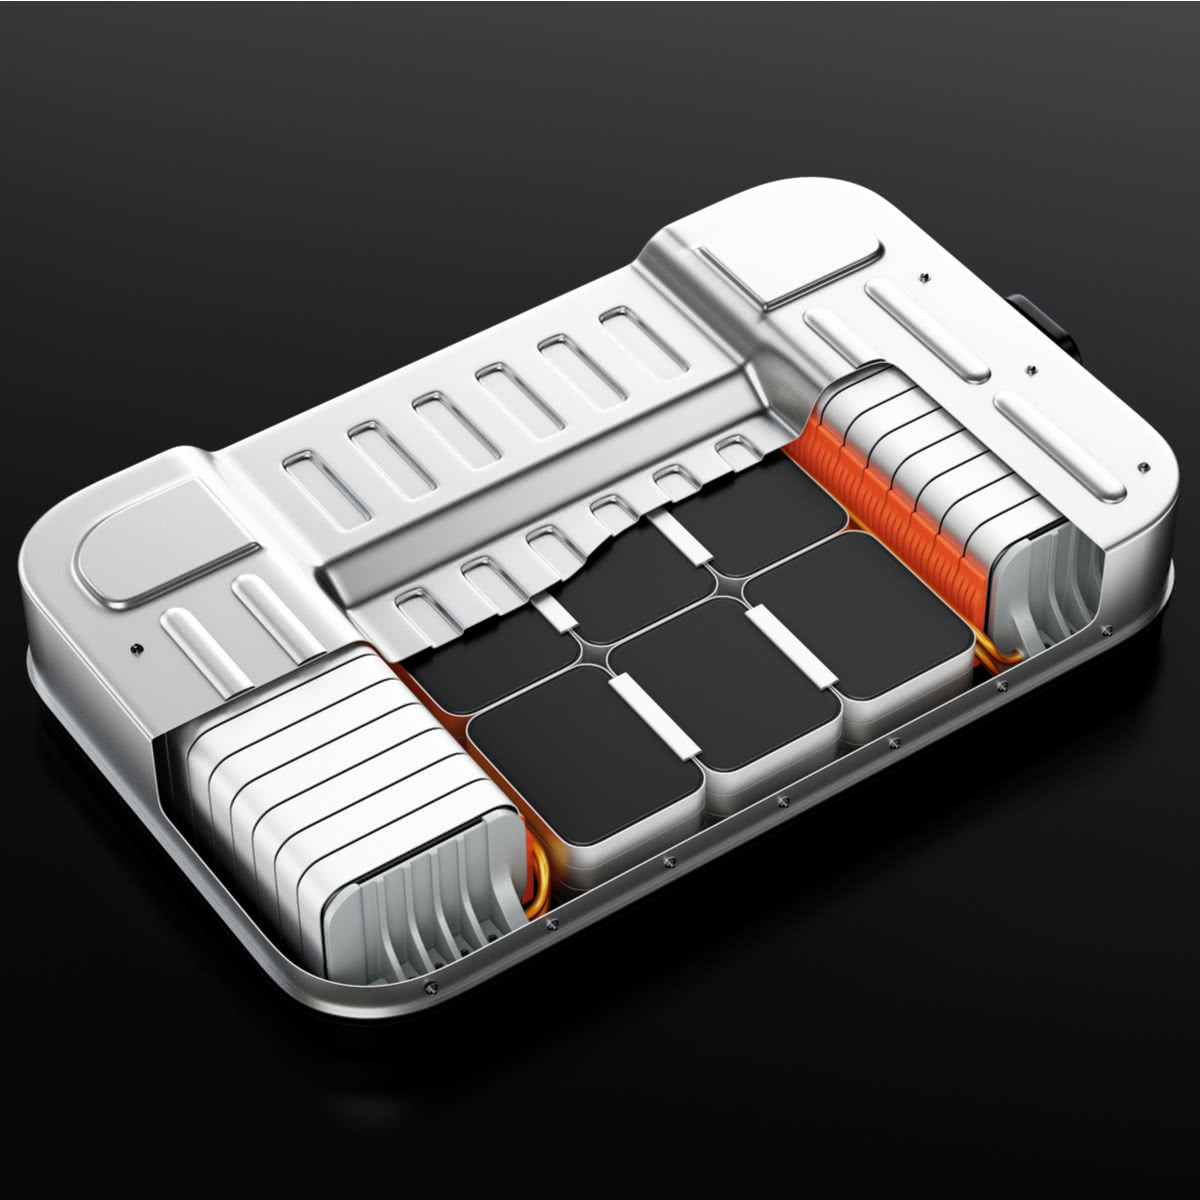 The Lifecycle of an Electric Car Battery: Implications for CSR